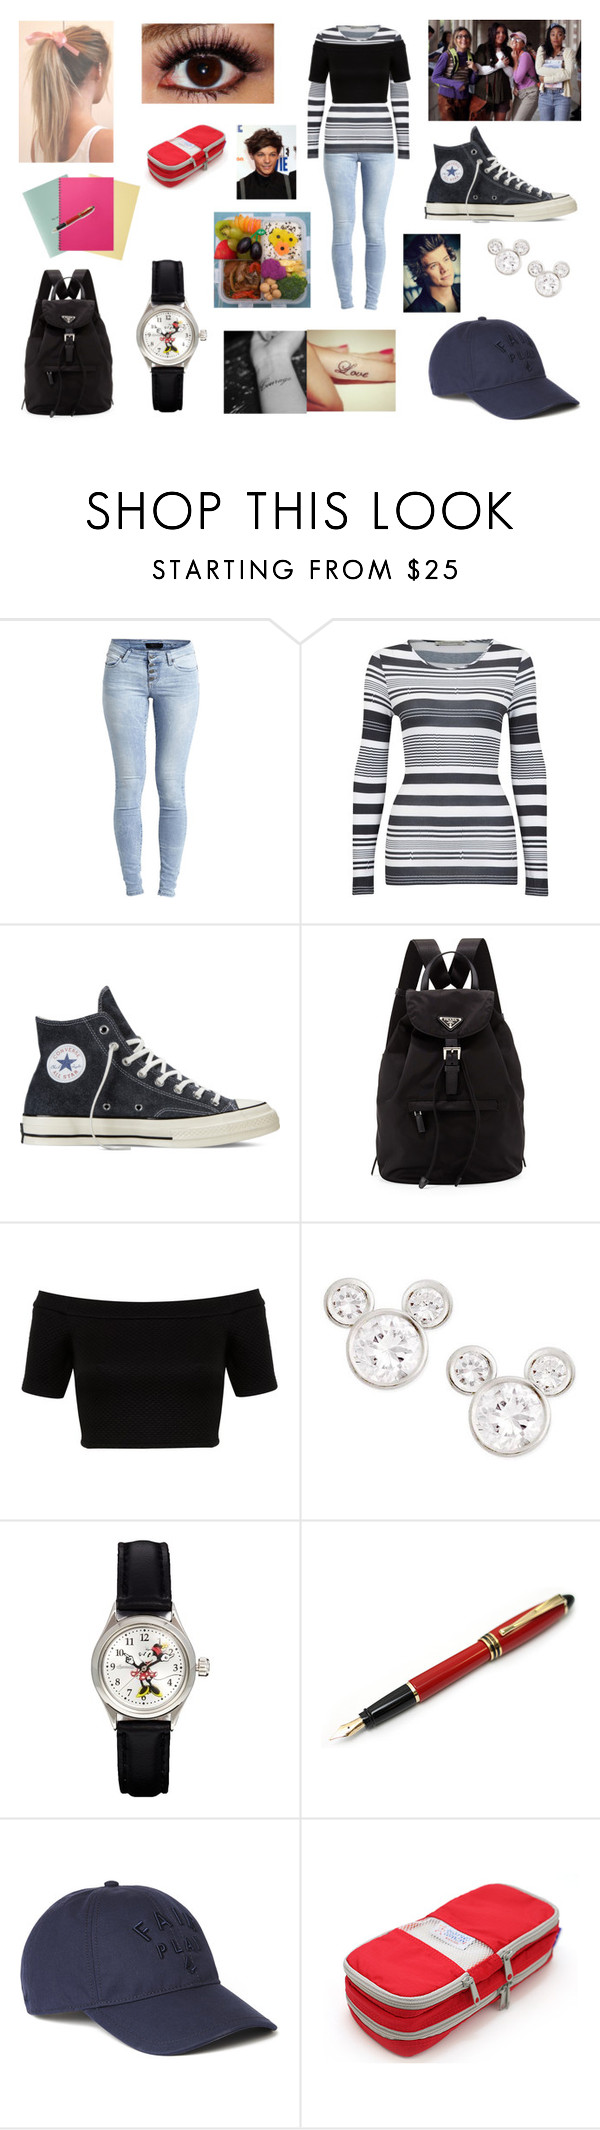 """Black magic before (with little mix)"" by louisericoul on Polyvore featuring mode, Object Collectors Item, FWSS, Converse, Prada, Miss Selfridge, Disney, Fountain et Lacoste"